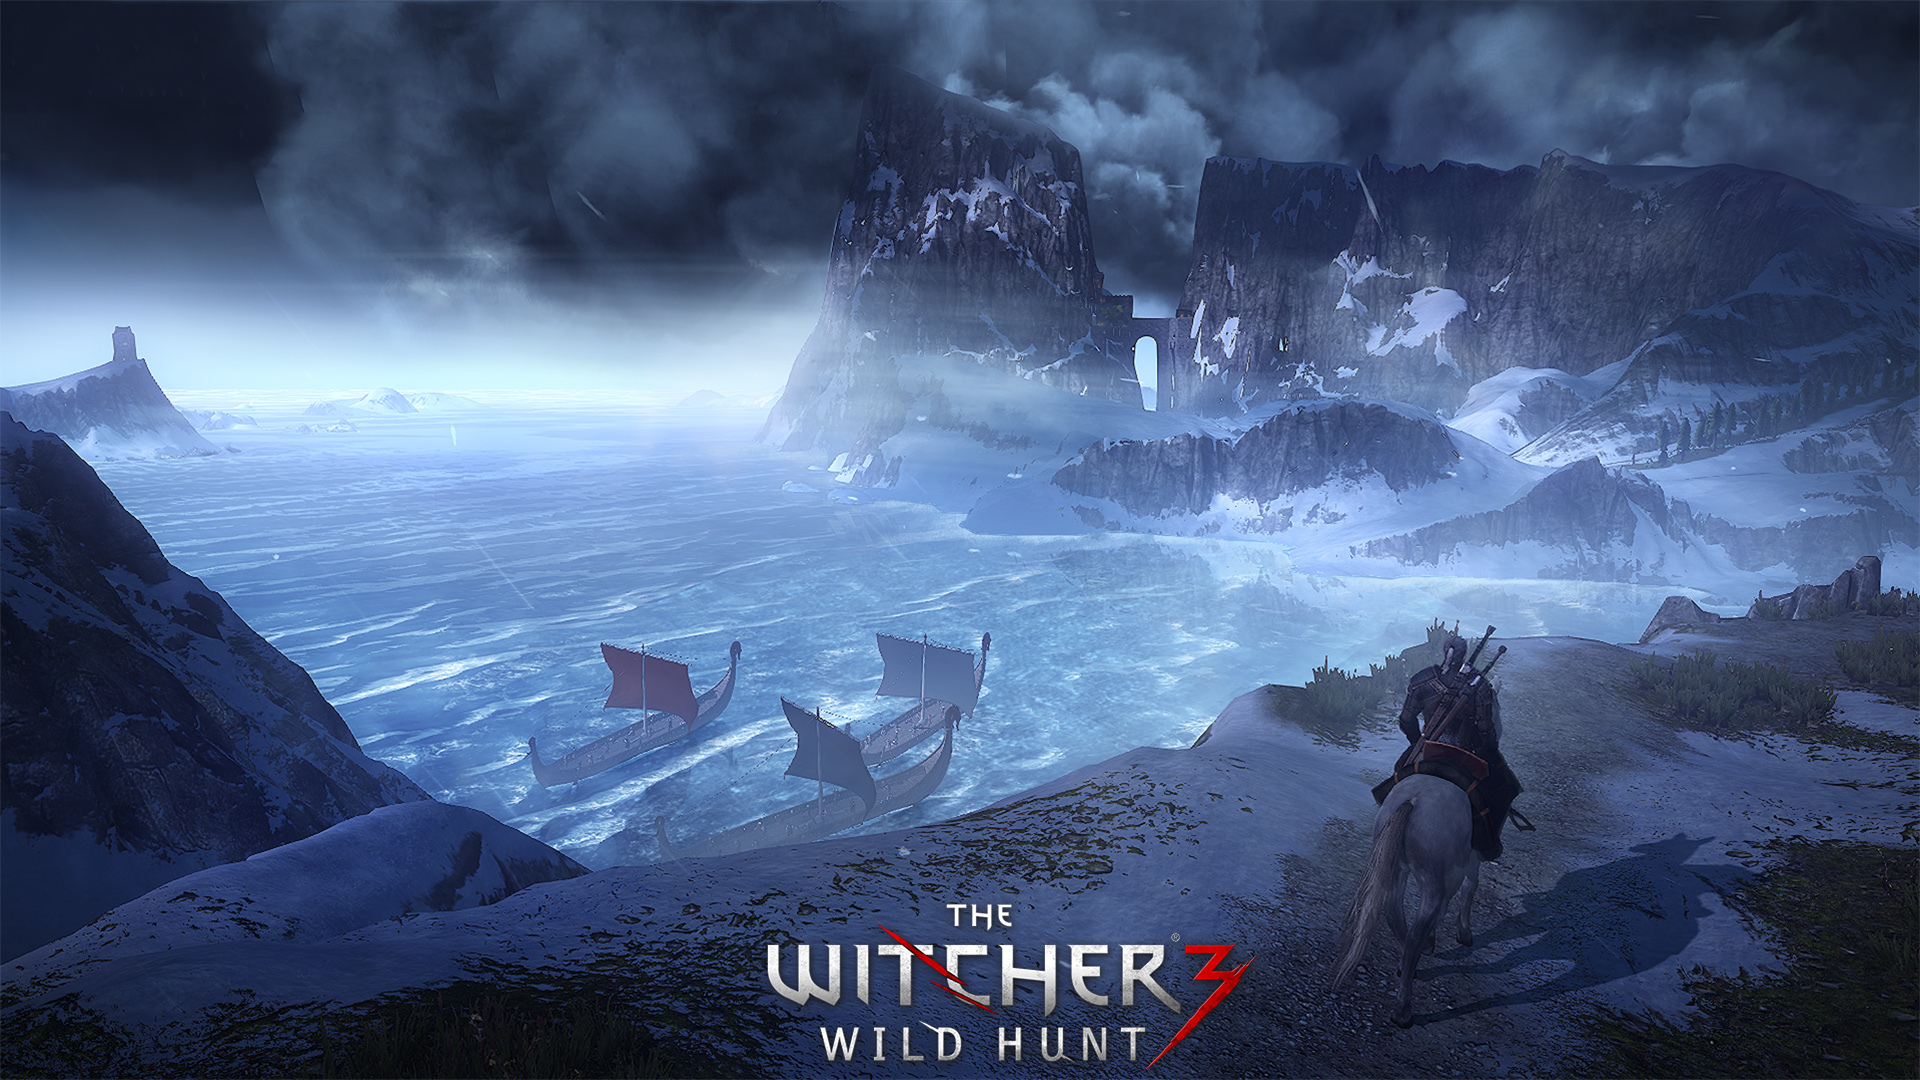 1920x1080 The Witcher 3 Game Hd Laptop Full Hd 1080p Hd 4k